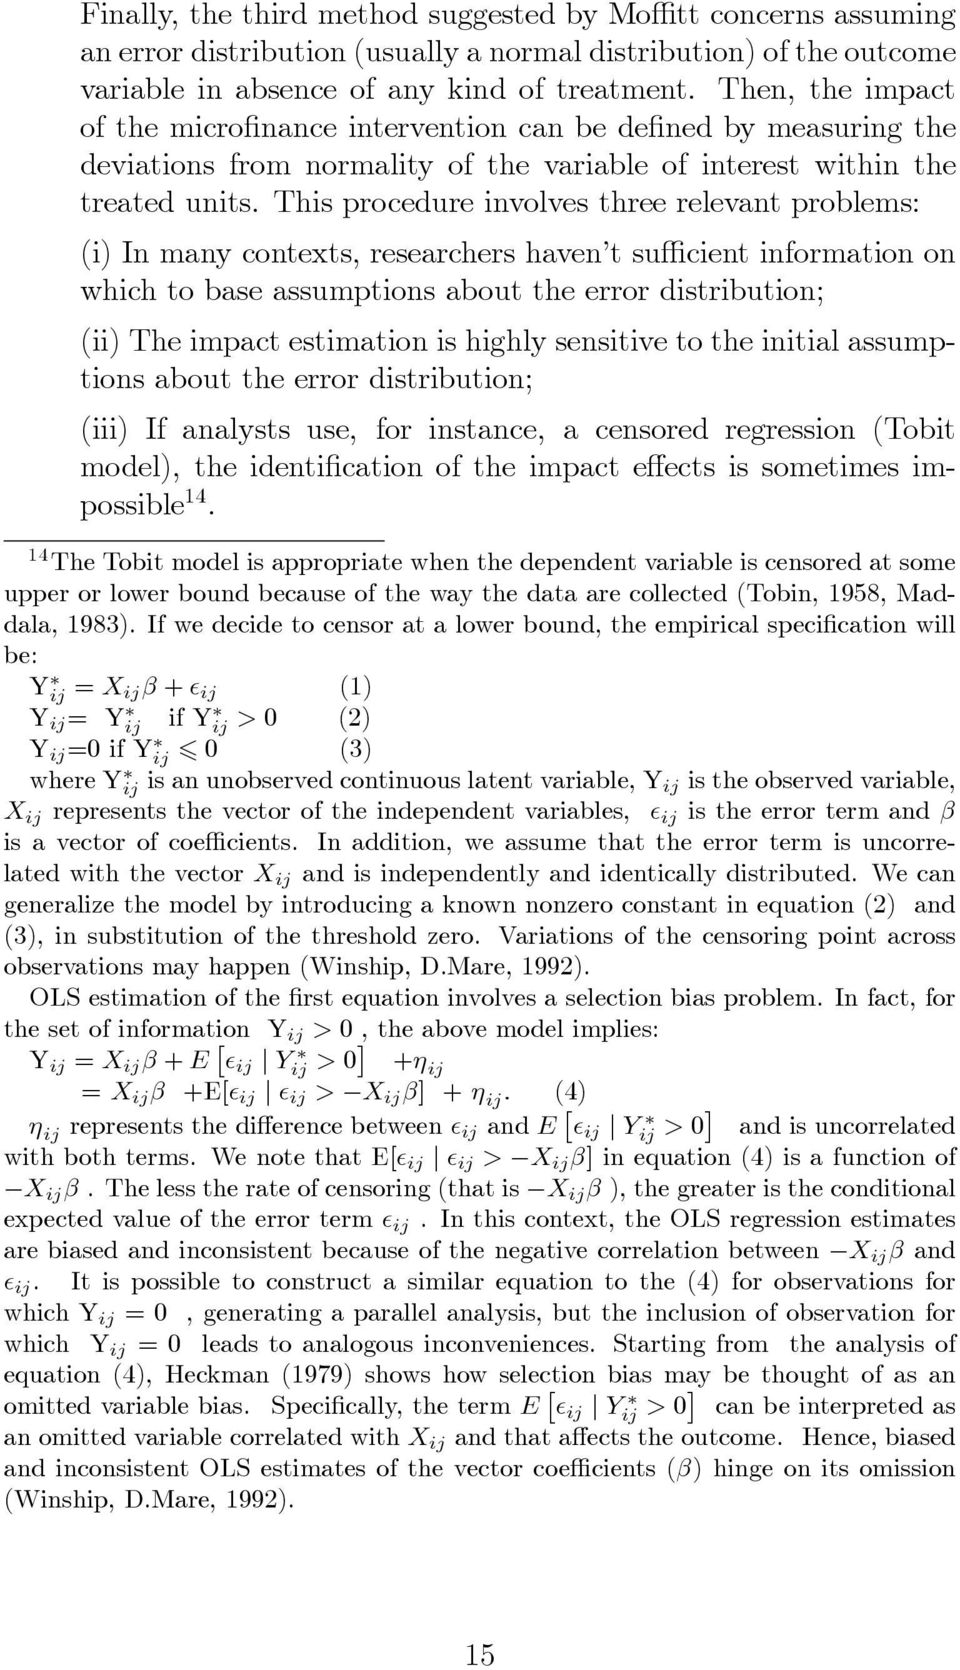 This procedure involves three relevant problems: (i) In many contexts, researchers haven t su cient information on which to base assumptions about the error distribution; (ii) The impact estimation